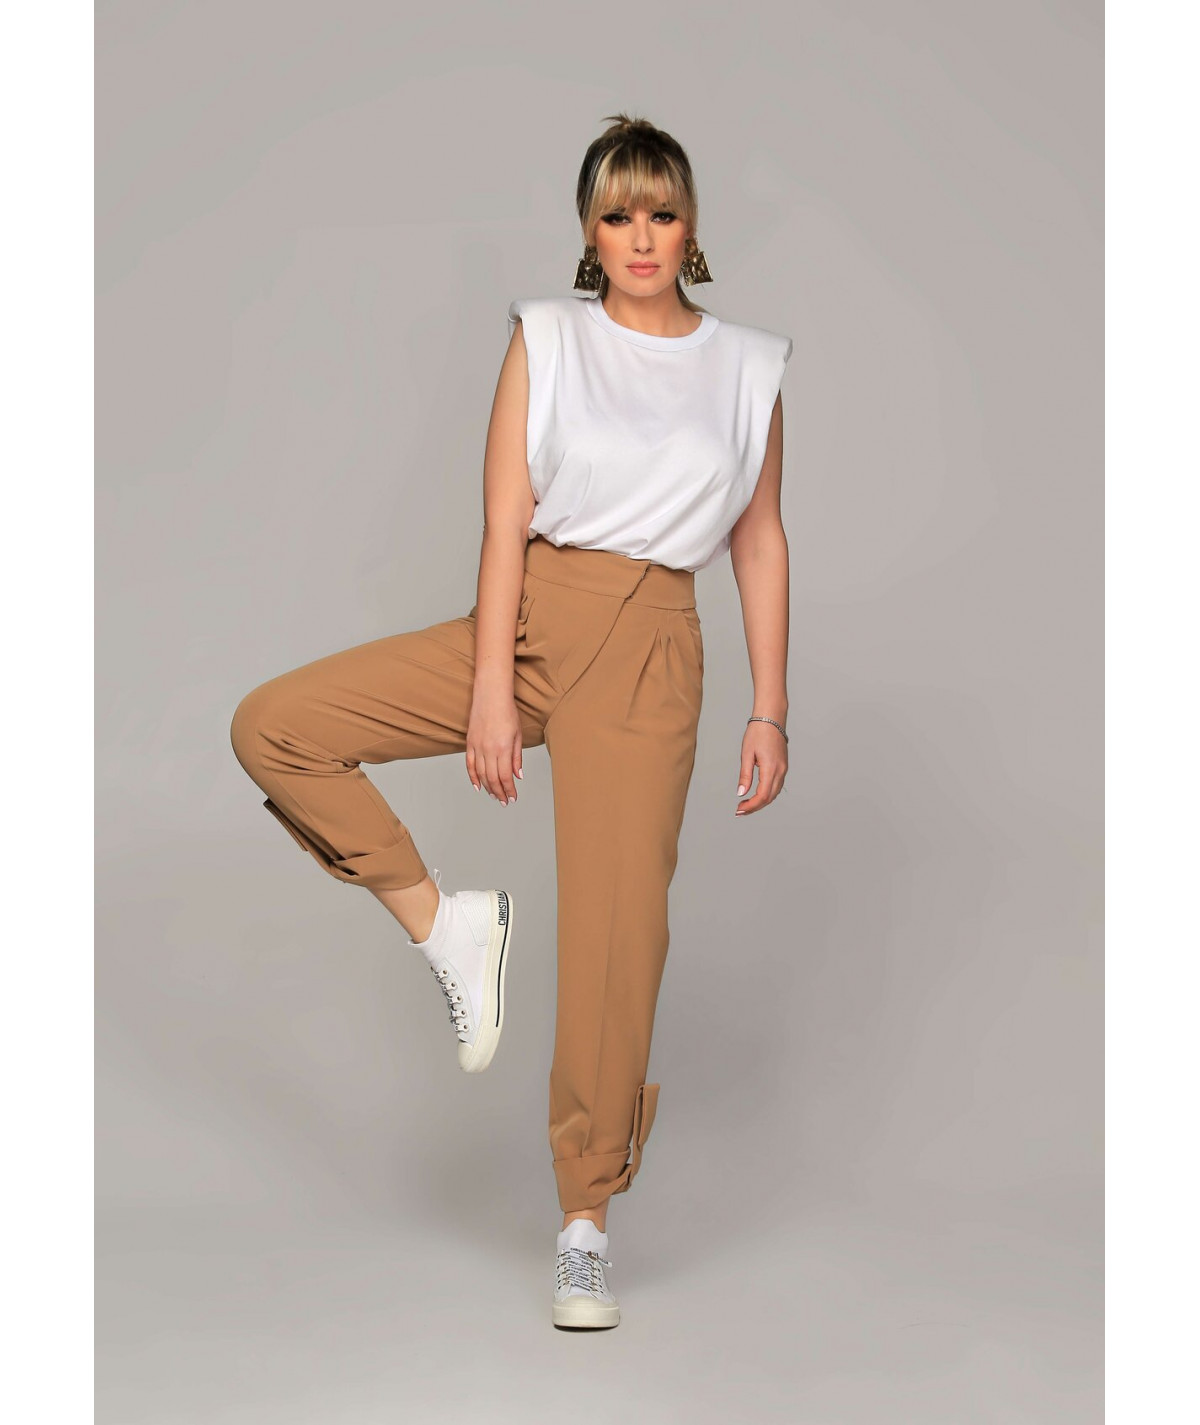 Women's trousers with front...